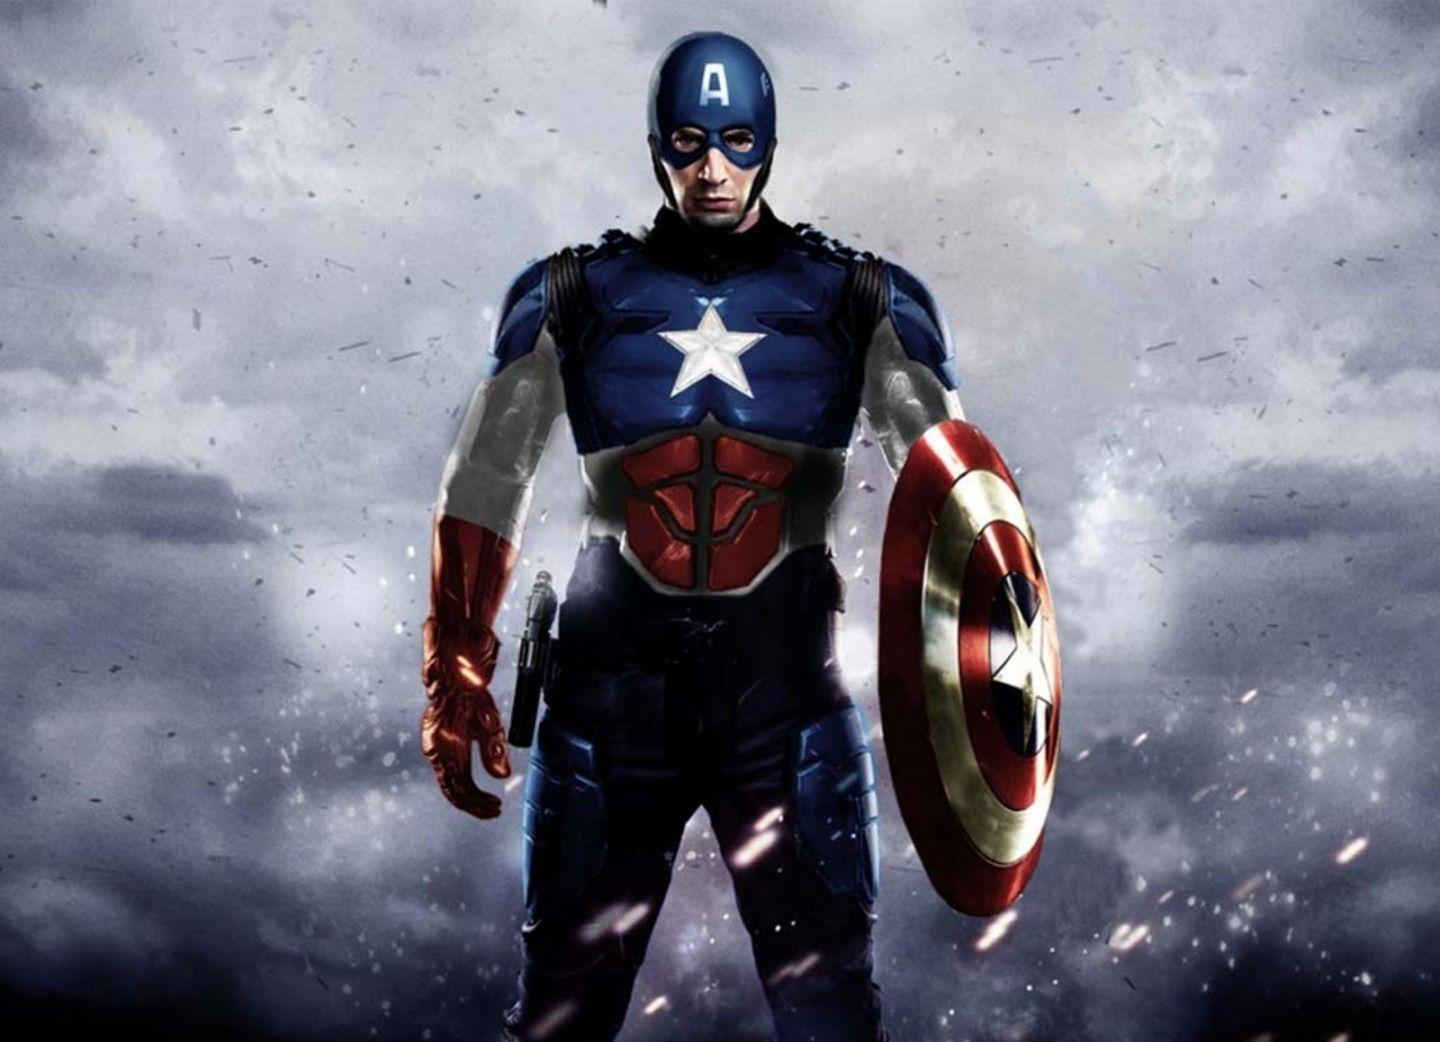 [49+] Captain America Wallpapers HD on WallpaperSafari  |Captain America Wallpaper